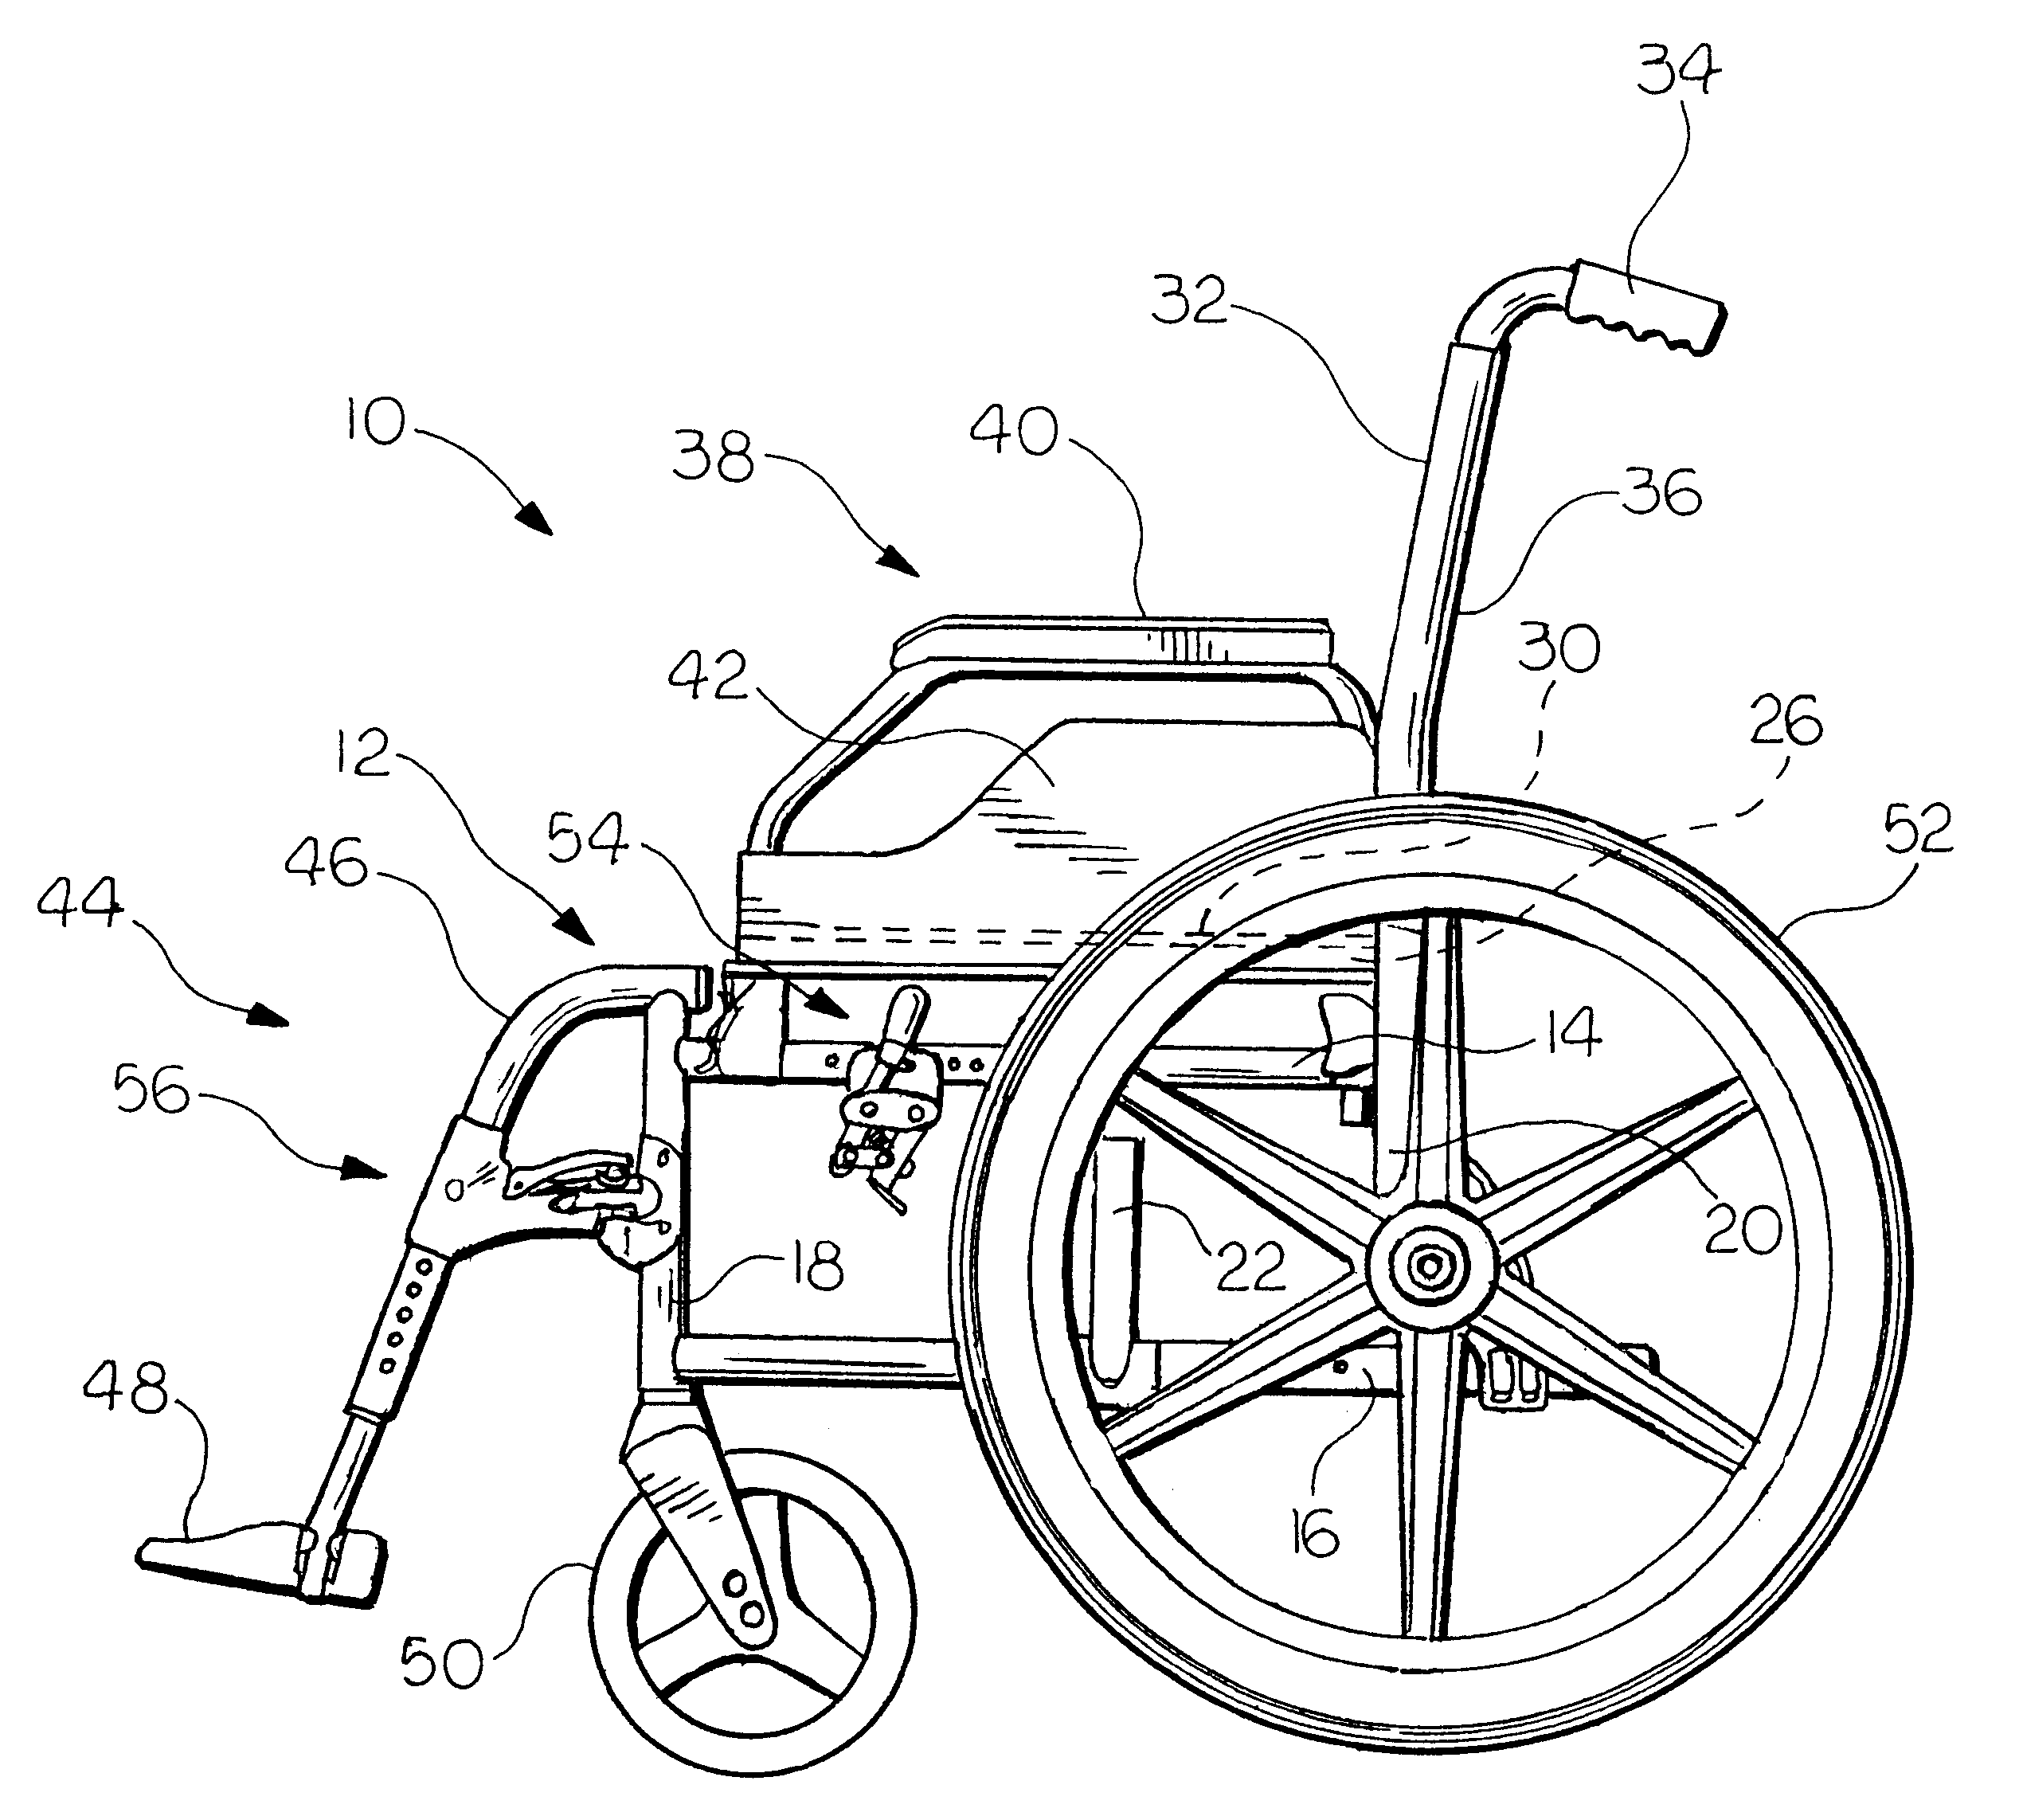 Wheelchair Drawing Buscar Con Google Bike Art Drawings Art